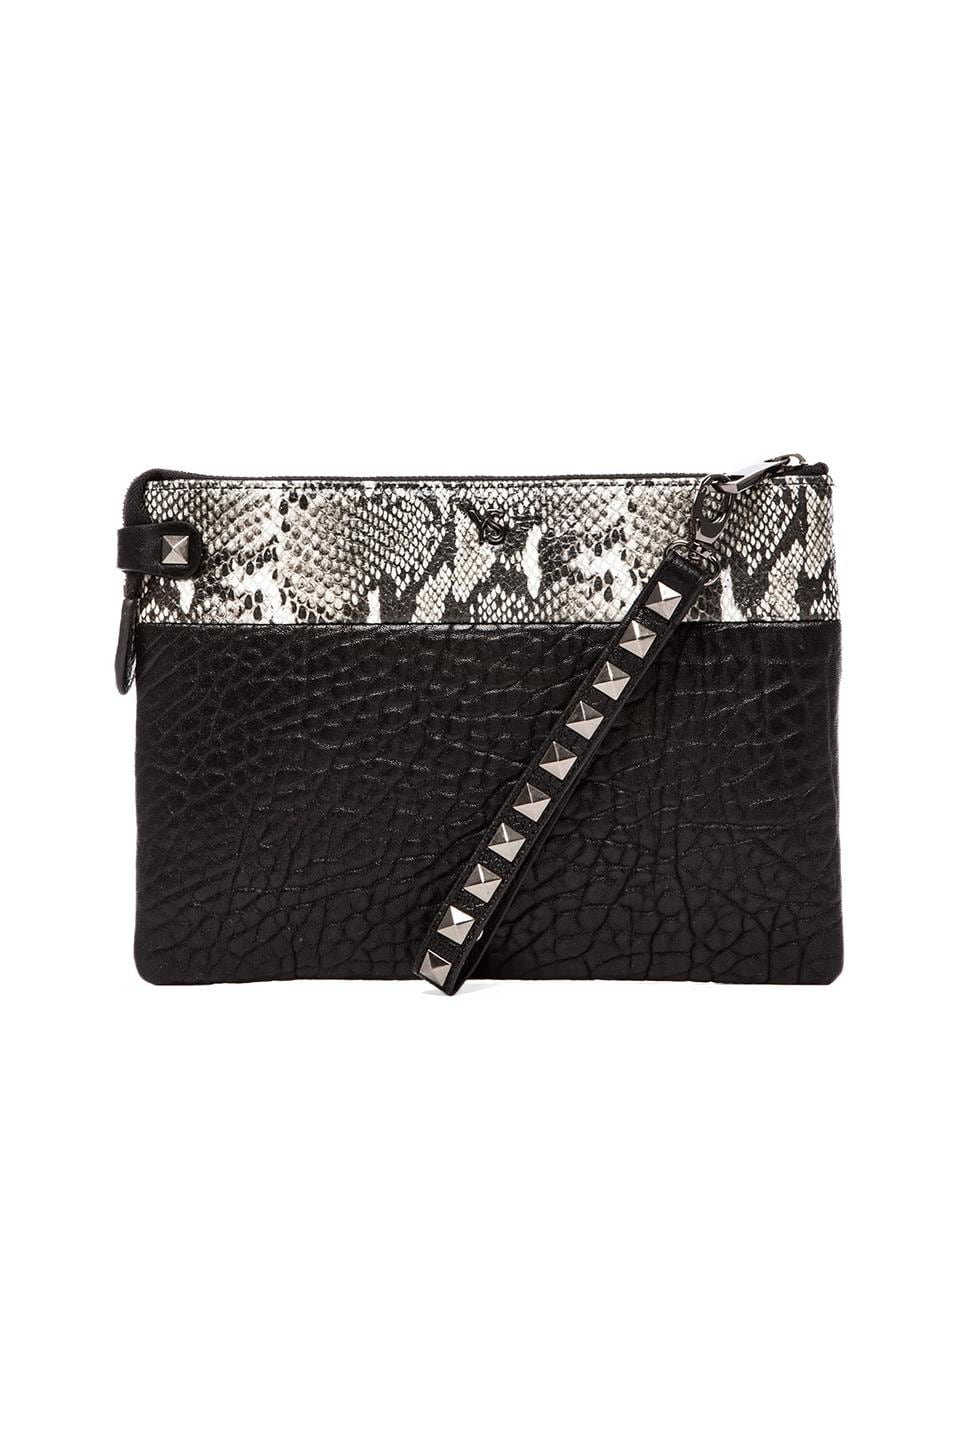 Yosi Samra Detachable Strap Two Tone Wristlet in Black & Clay Python